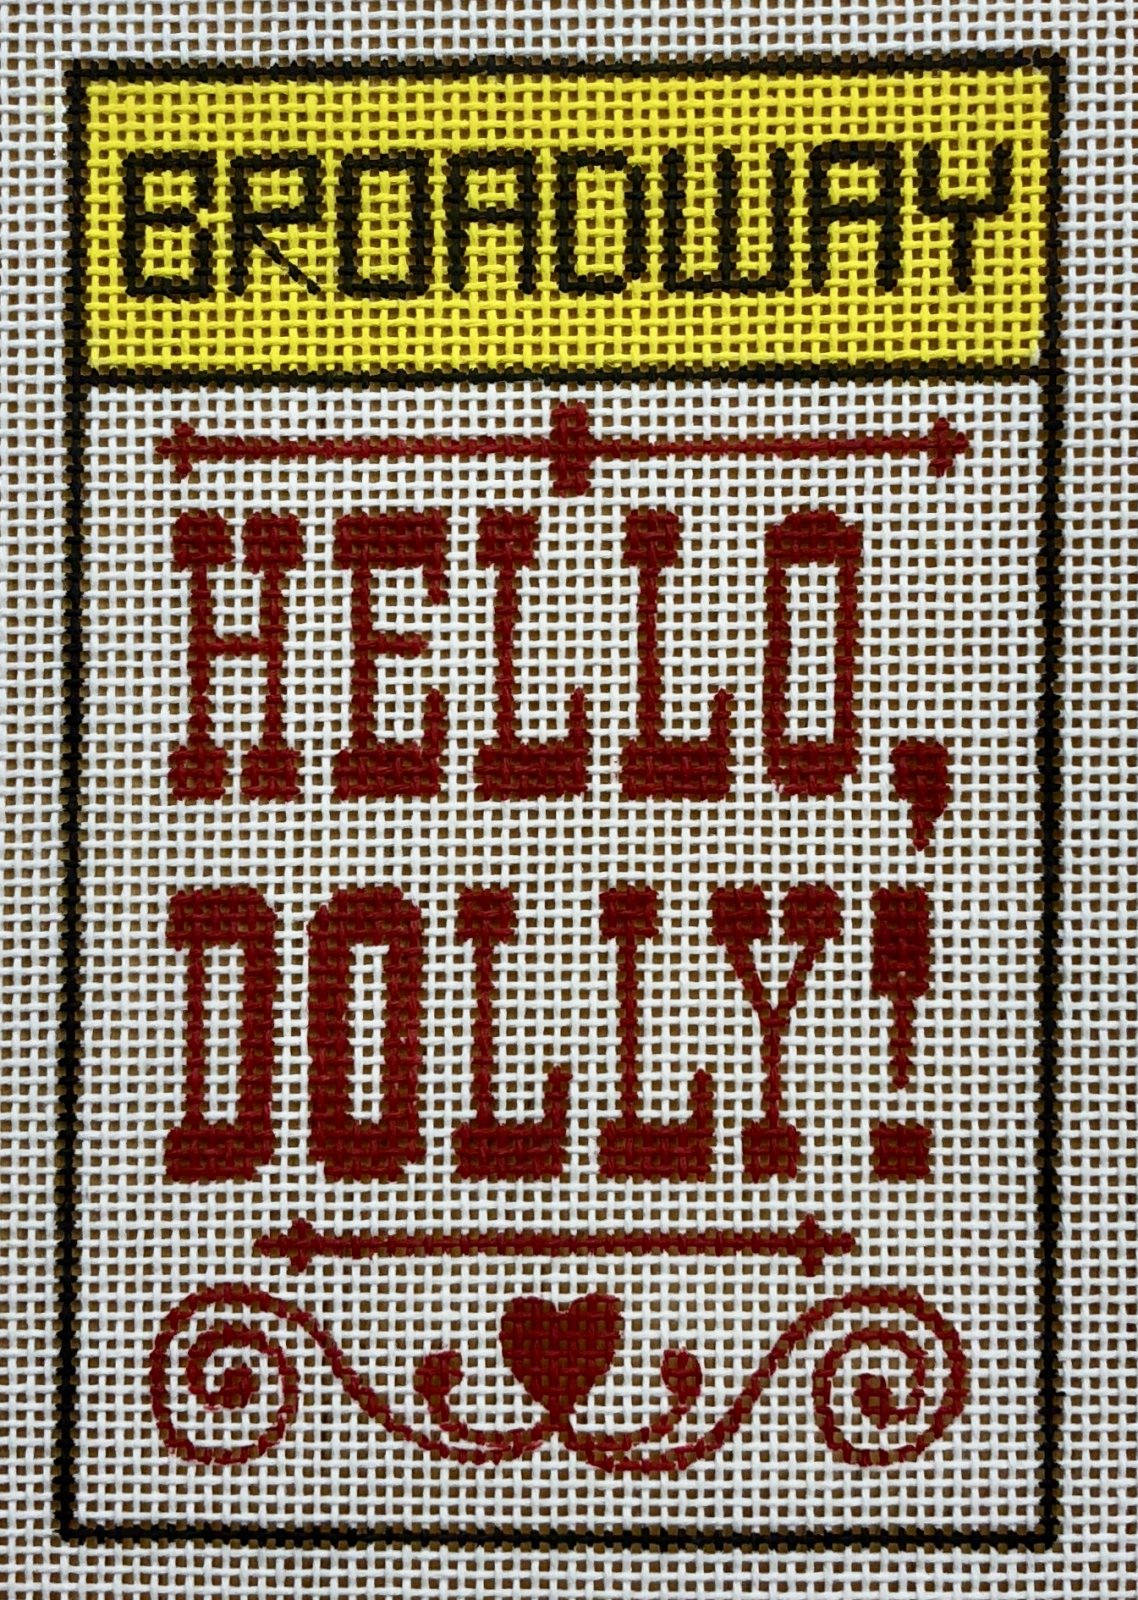 broadway: hello dolly!